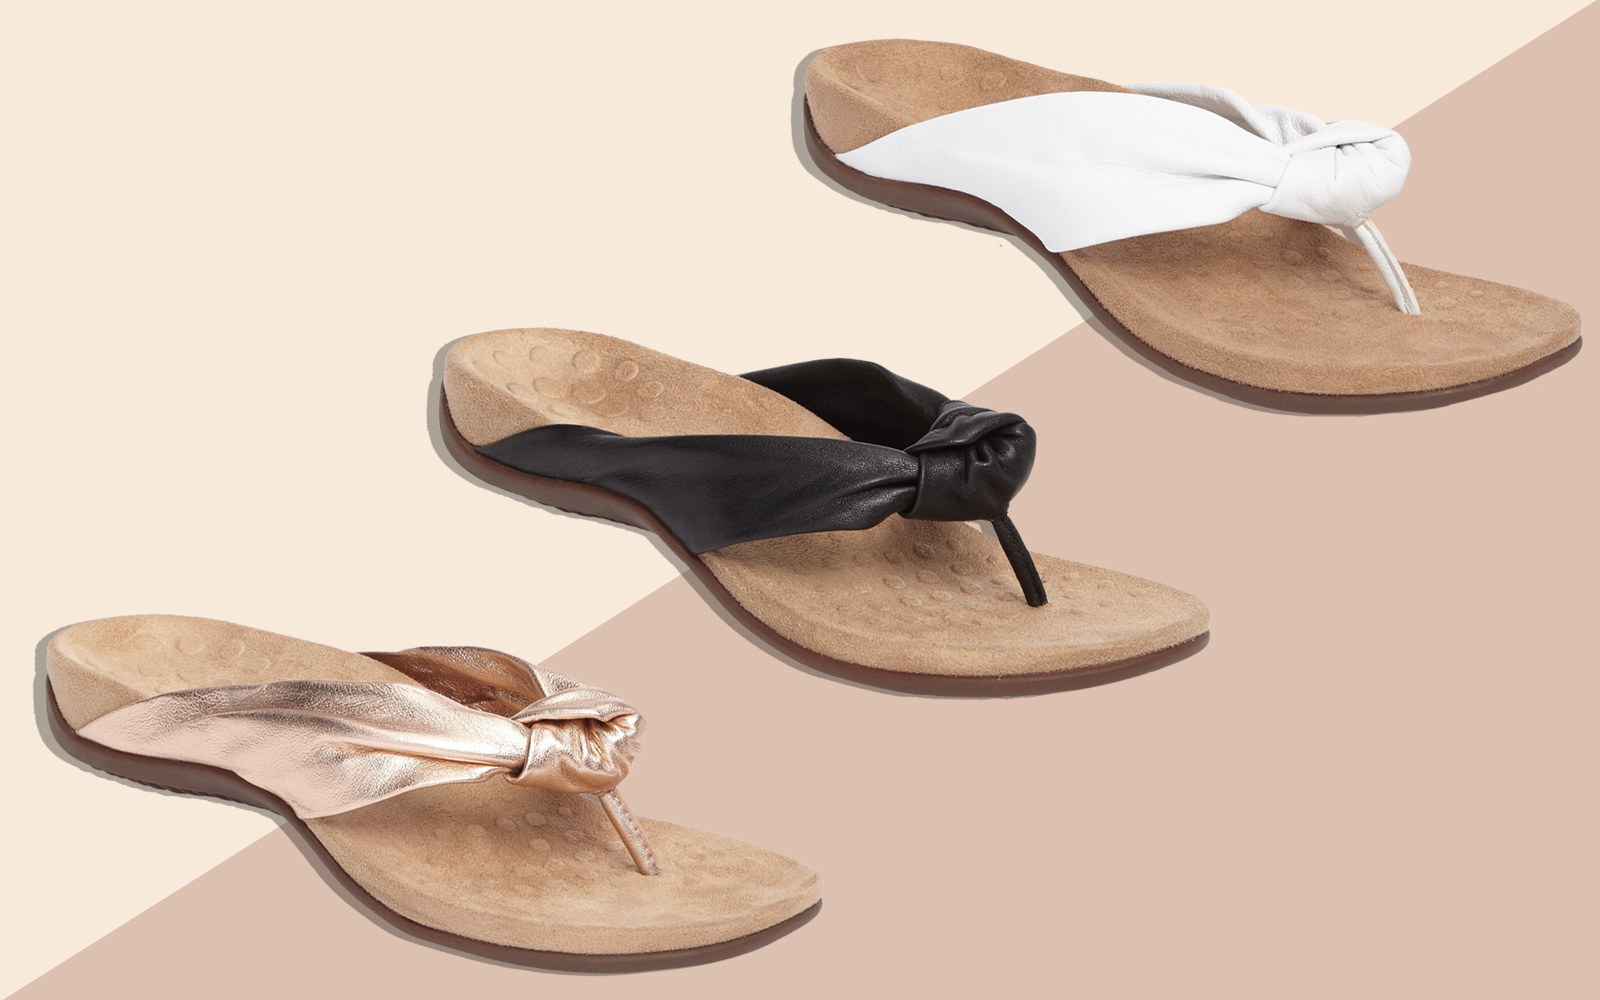 c8ee202d4 These Comfy Flip-flops Are Actually Cute — and on Sale for 35% Off ...